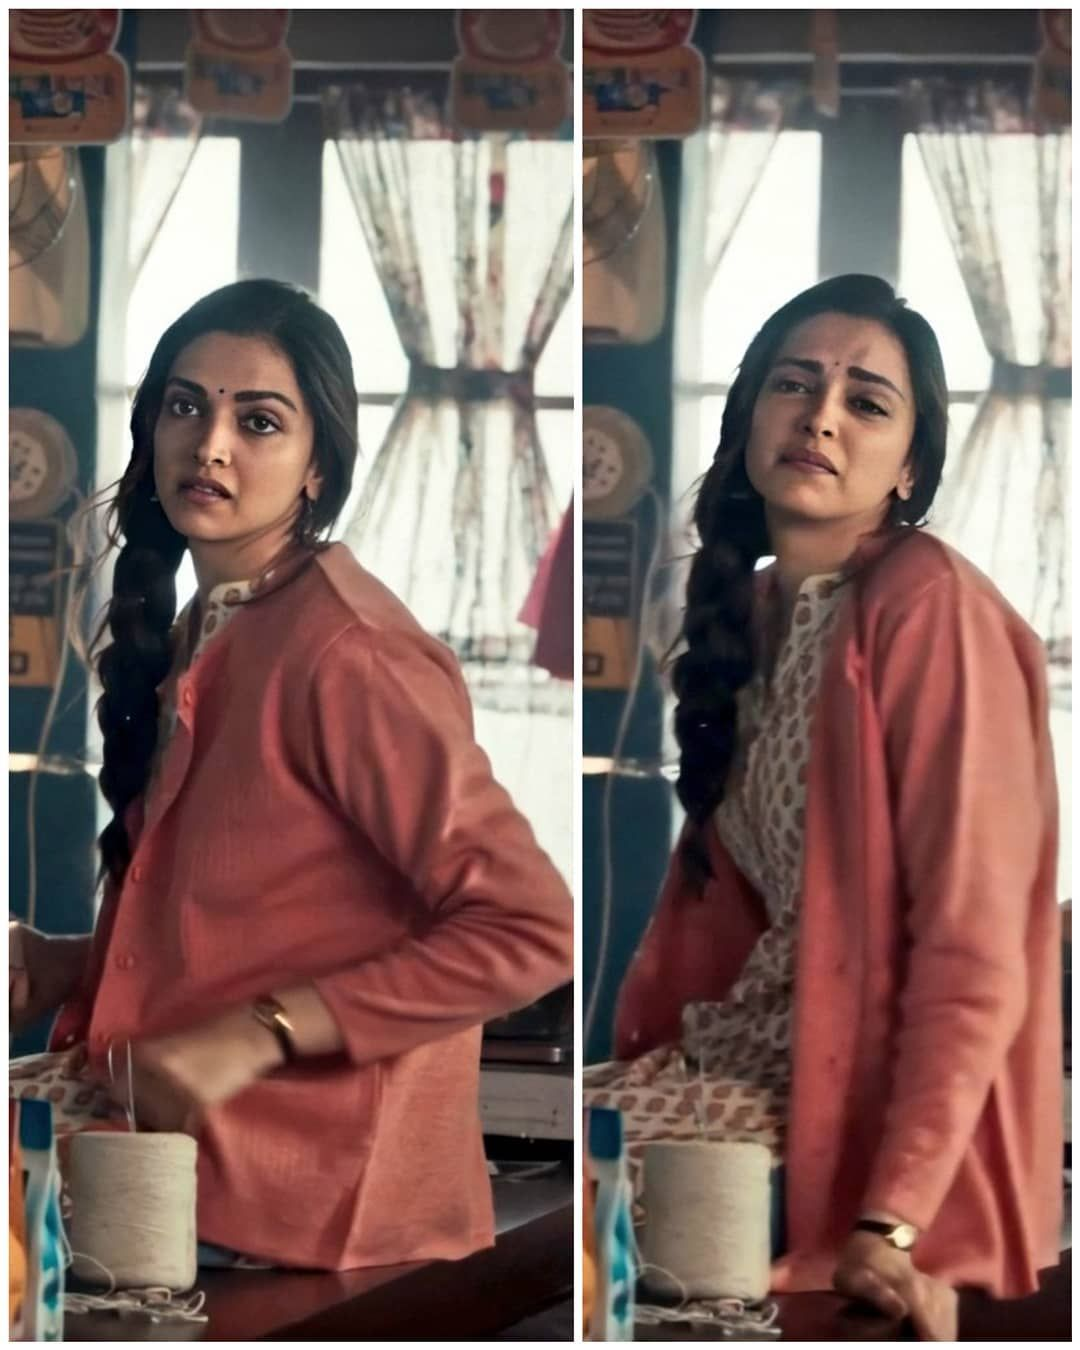 Deepika Padukone S Latest Ad Commercial Is Sure To Bring Back Piku Memories Hungryboo Deepika Padukone Style Deepika Padukone Deepika Padukone Latest